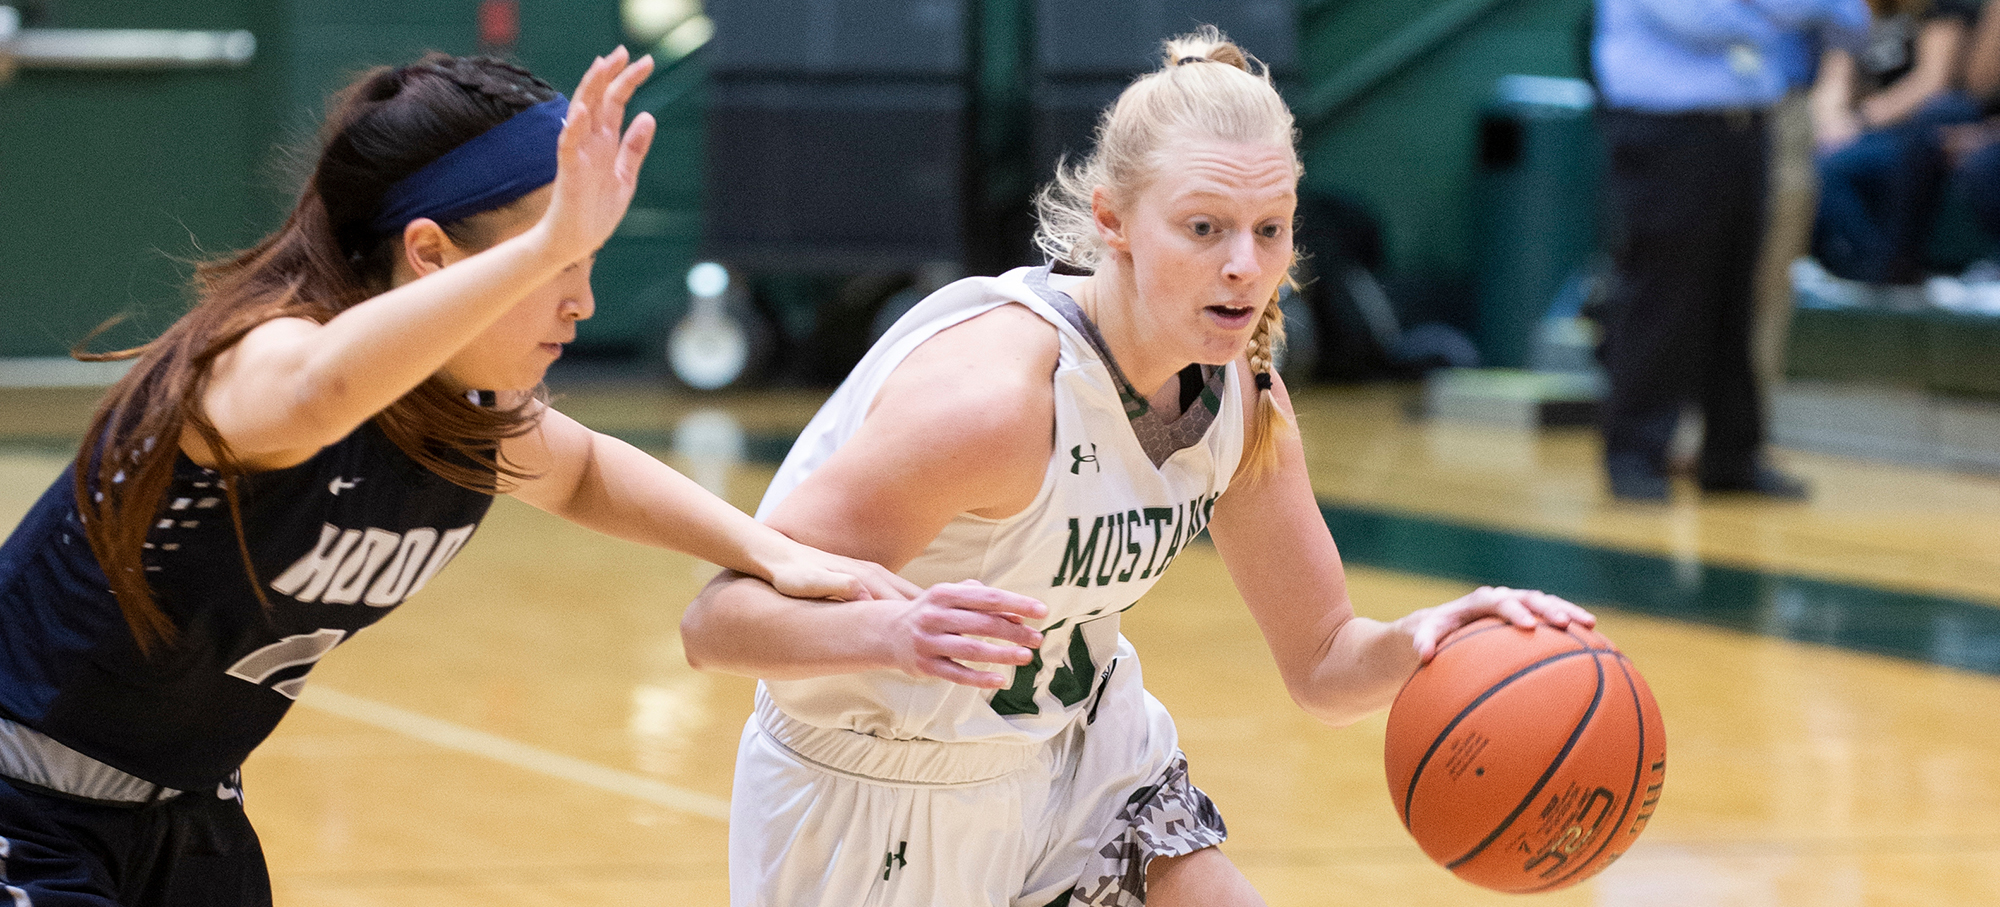 Crist's Career-High 21 Pushes Mustangs Past Albright in Regular Season Finale